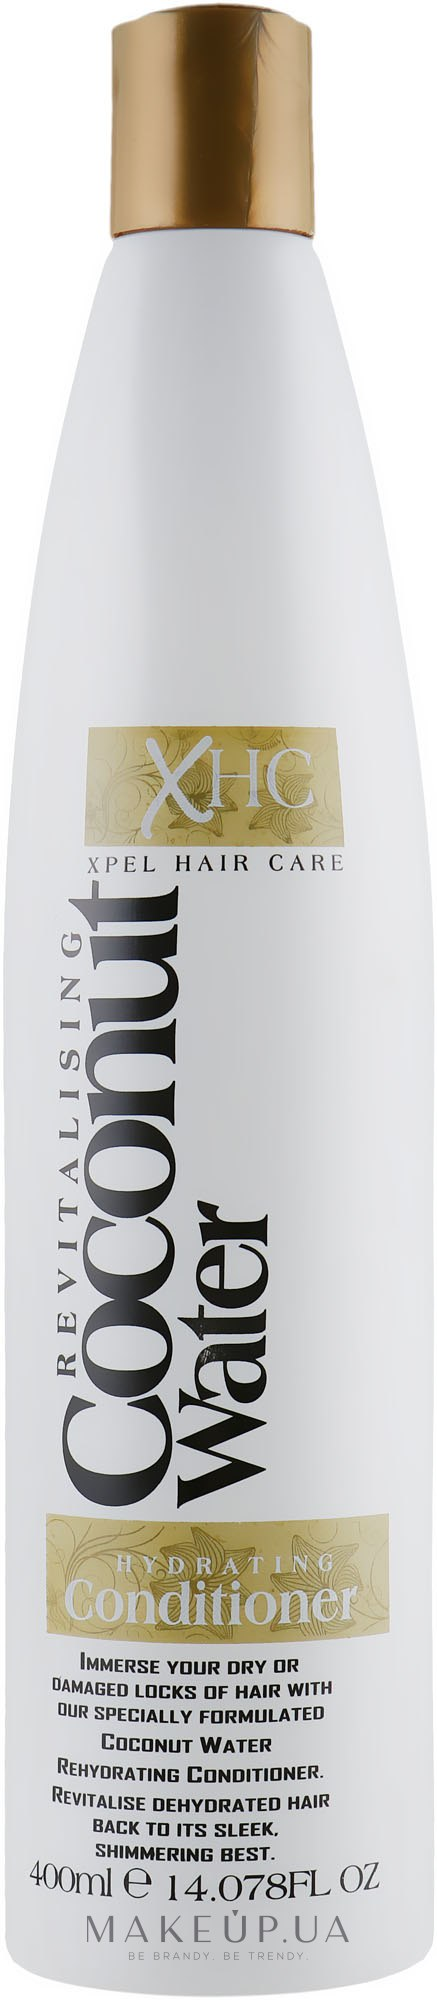 Кондиционер для волос - Xpel Marketing Ltd Coconut Water Hydrating Conditioner — фото 400ml